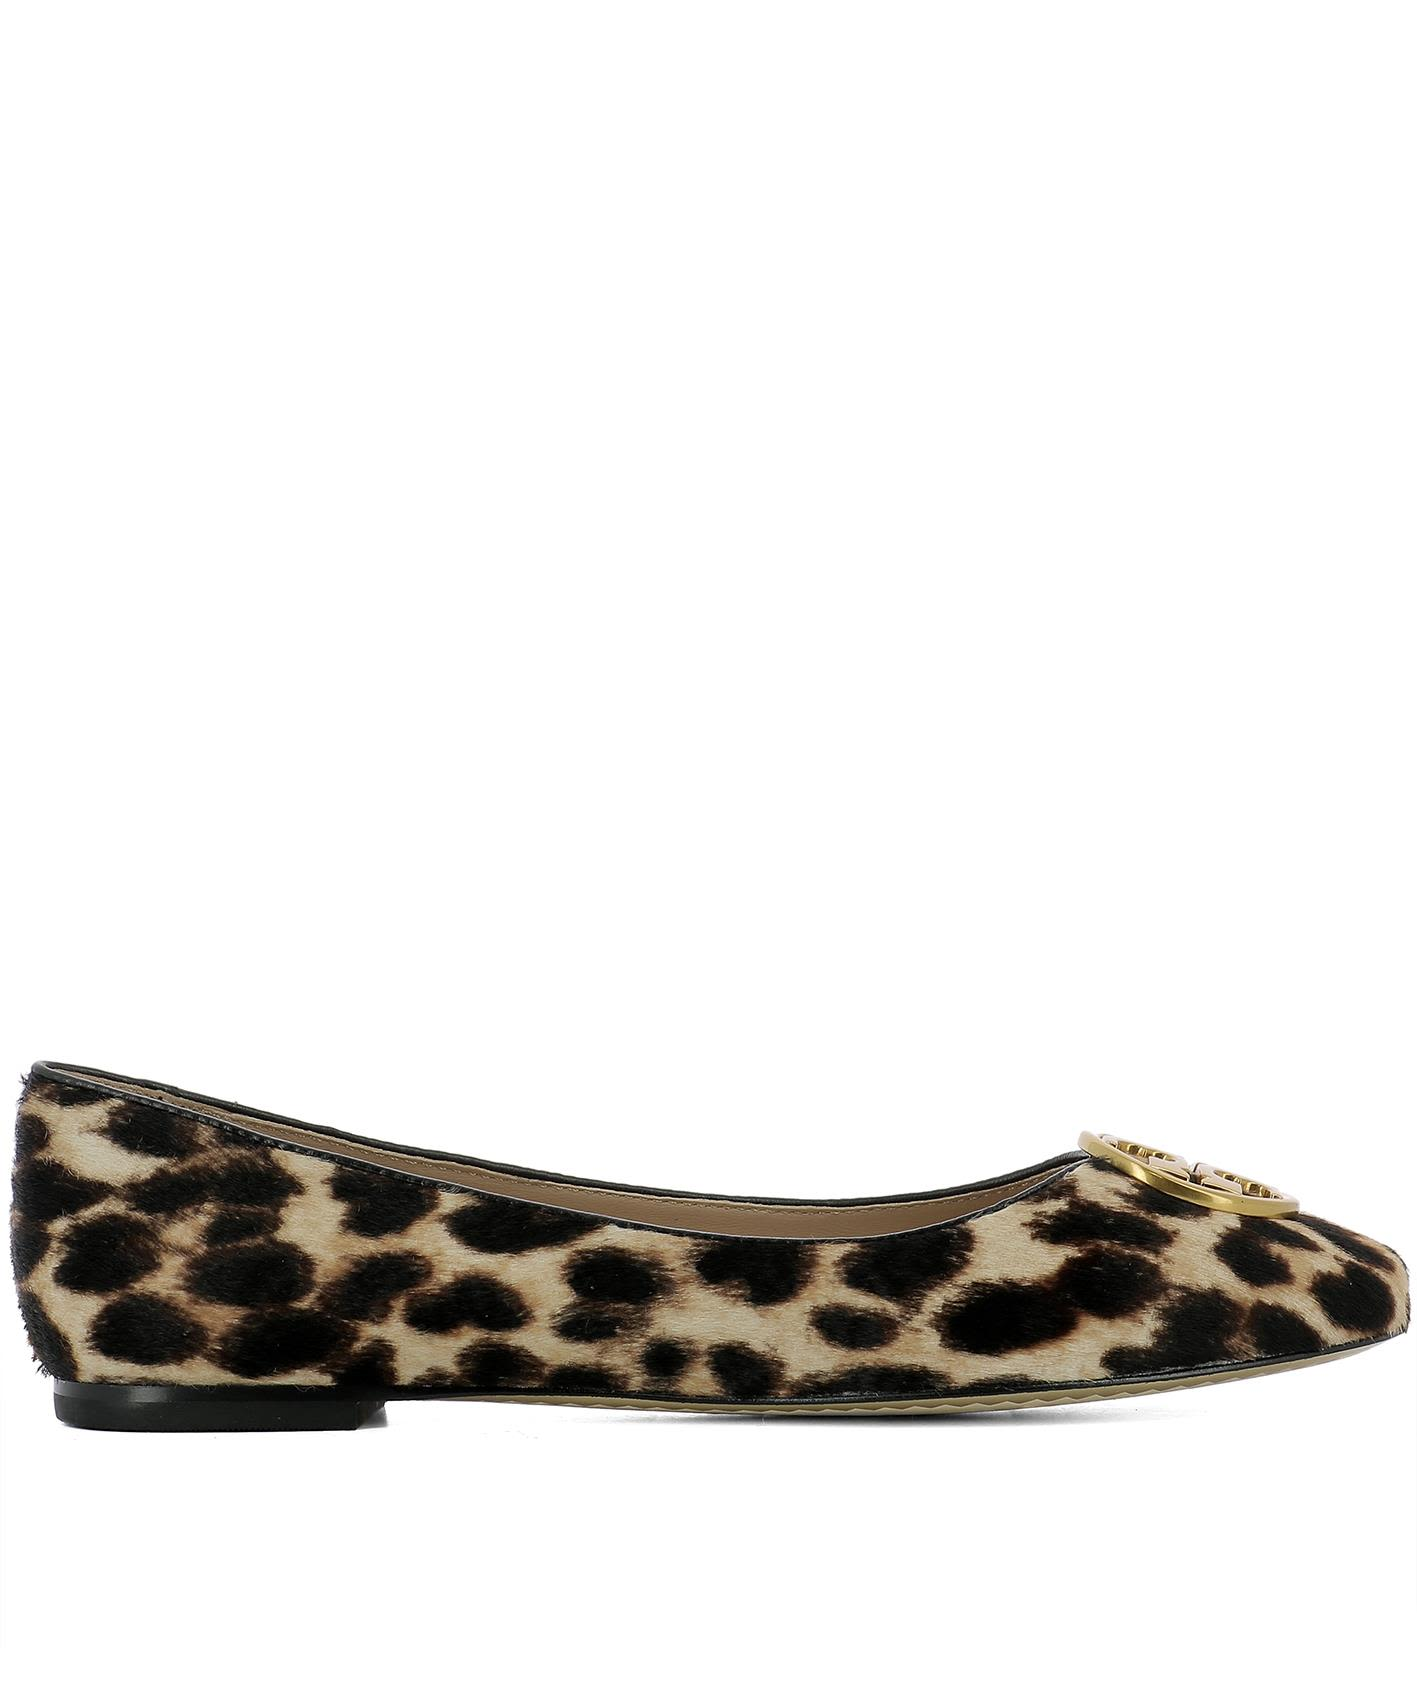 Animalier Leather Ballerinas